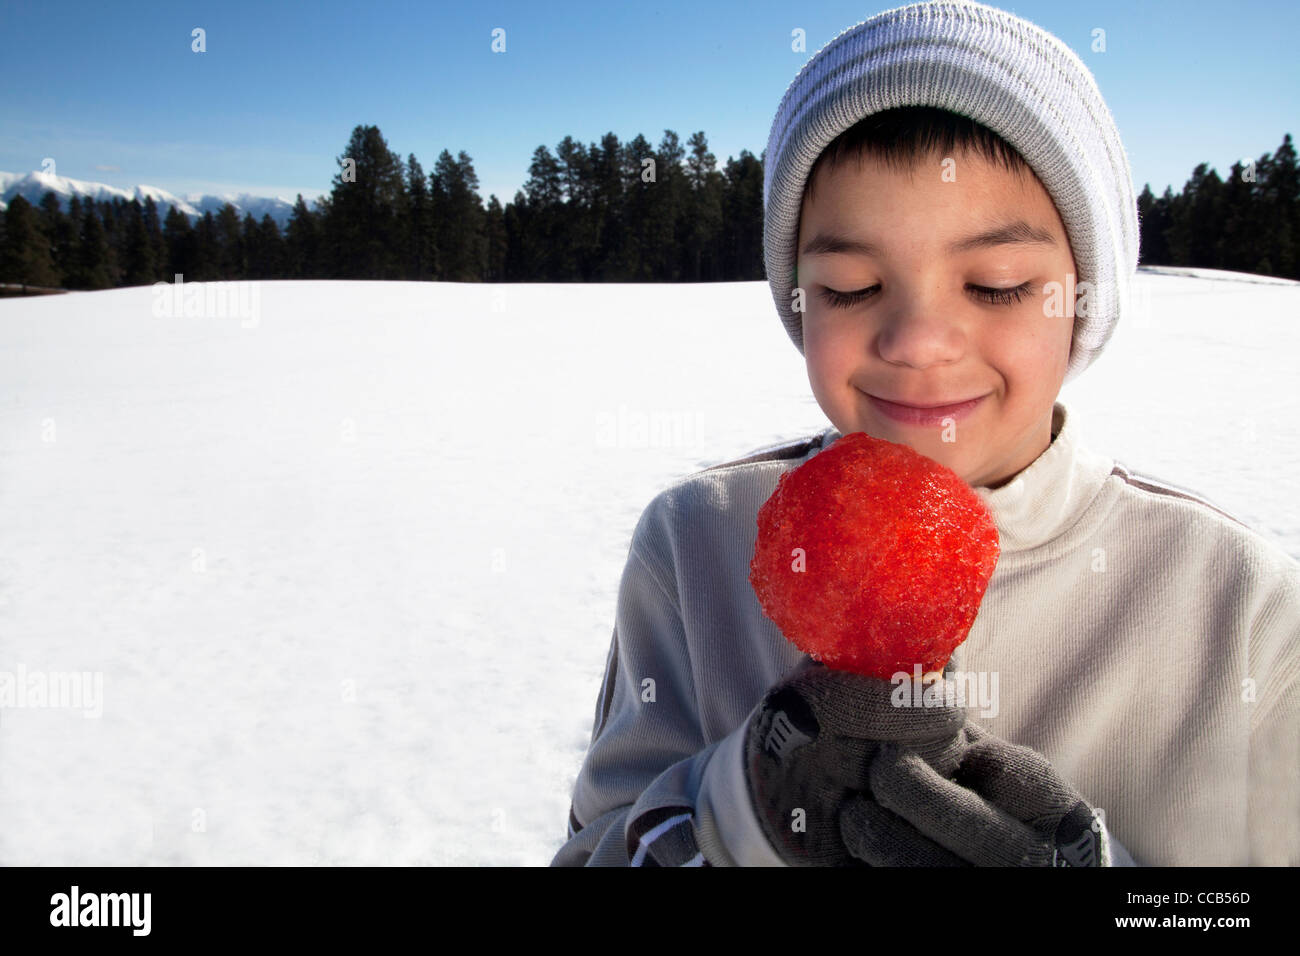 Boy 10 -12 yrs old eating a snow cone on a winter day outdoors. - Stock Image